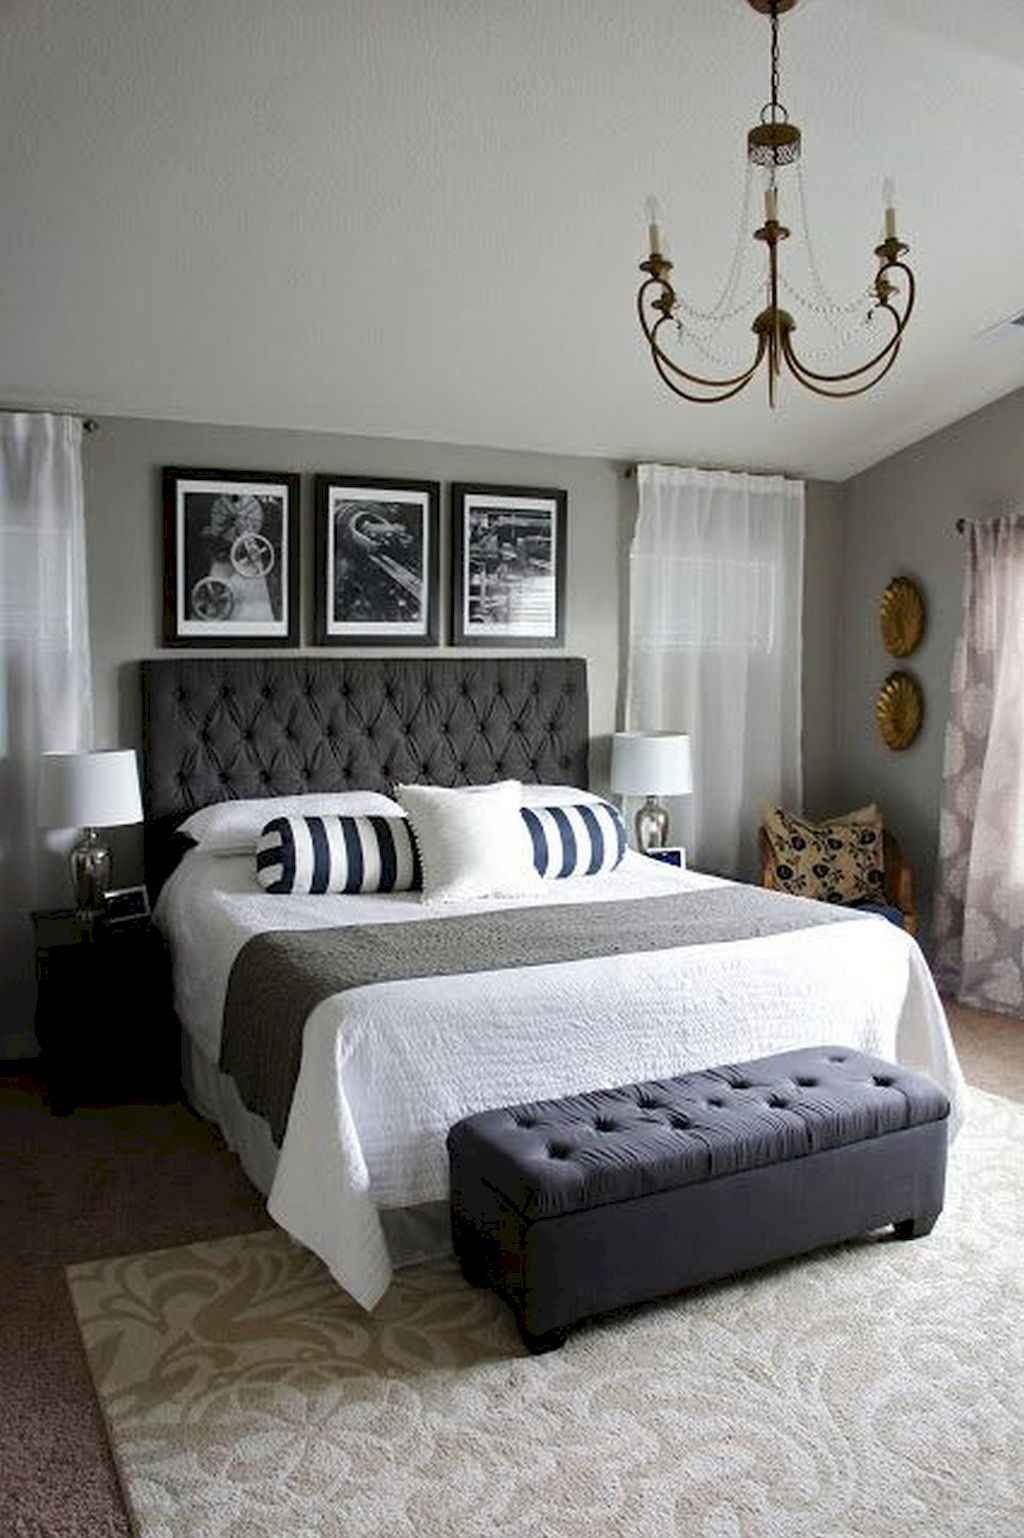 Couples first apartment decorating ideas (58)